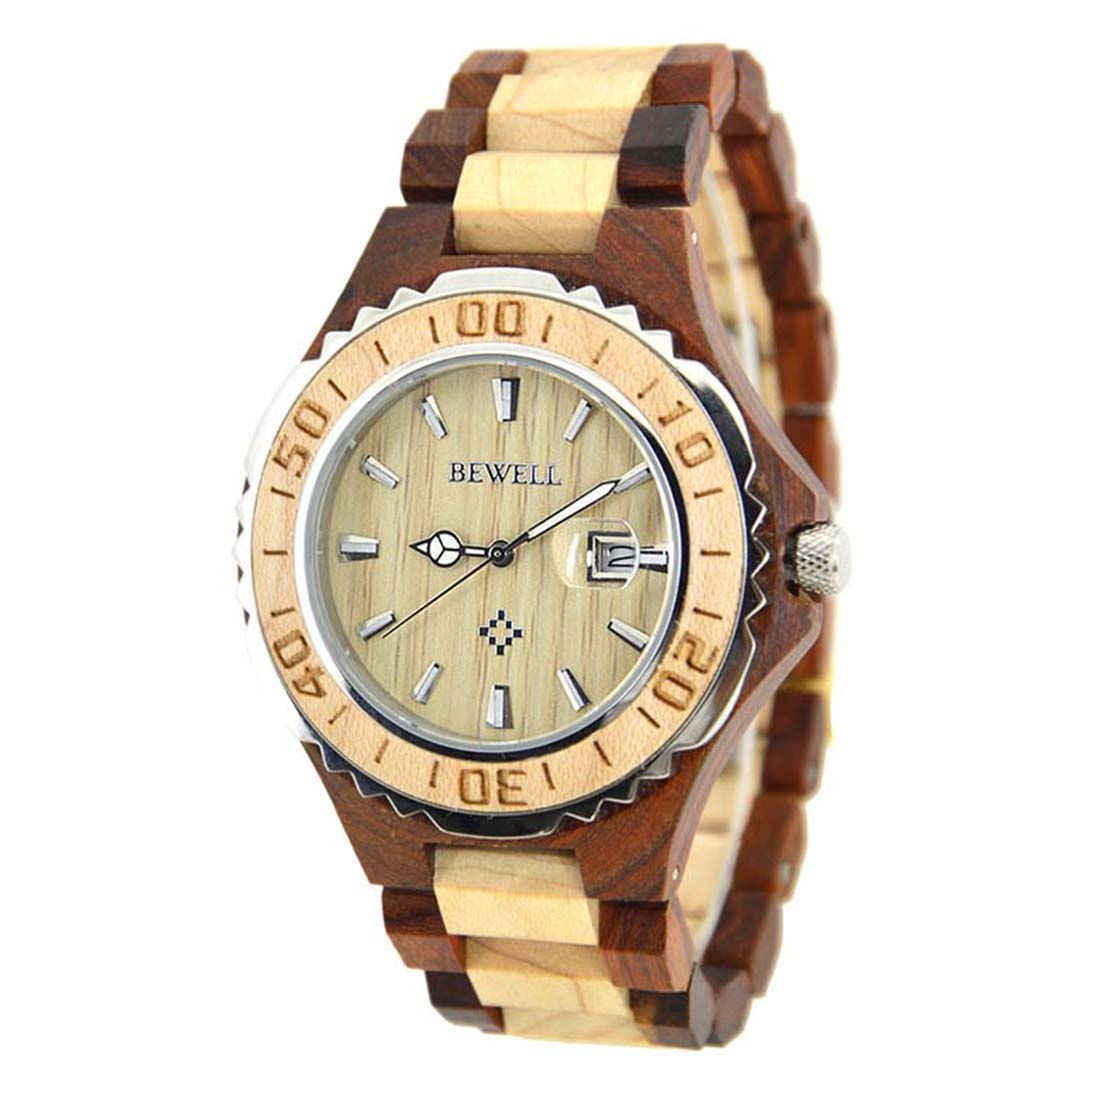 2018 Luxury Men Wrist Watch Wooden Watches Maple Wood Japan Movement Quartz Bamboo Clock Wood Gift Relojes Hombre 2018 dwg brand new wooden watch japan quartz movement rhinestone ladies fashion brown wrist watches women cherry wood clock with box